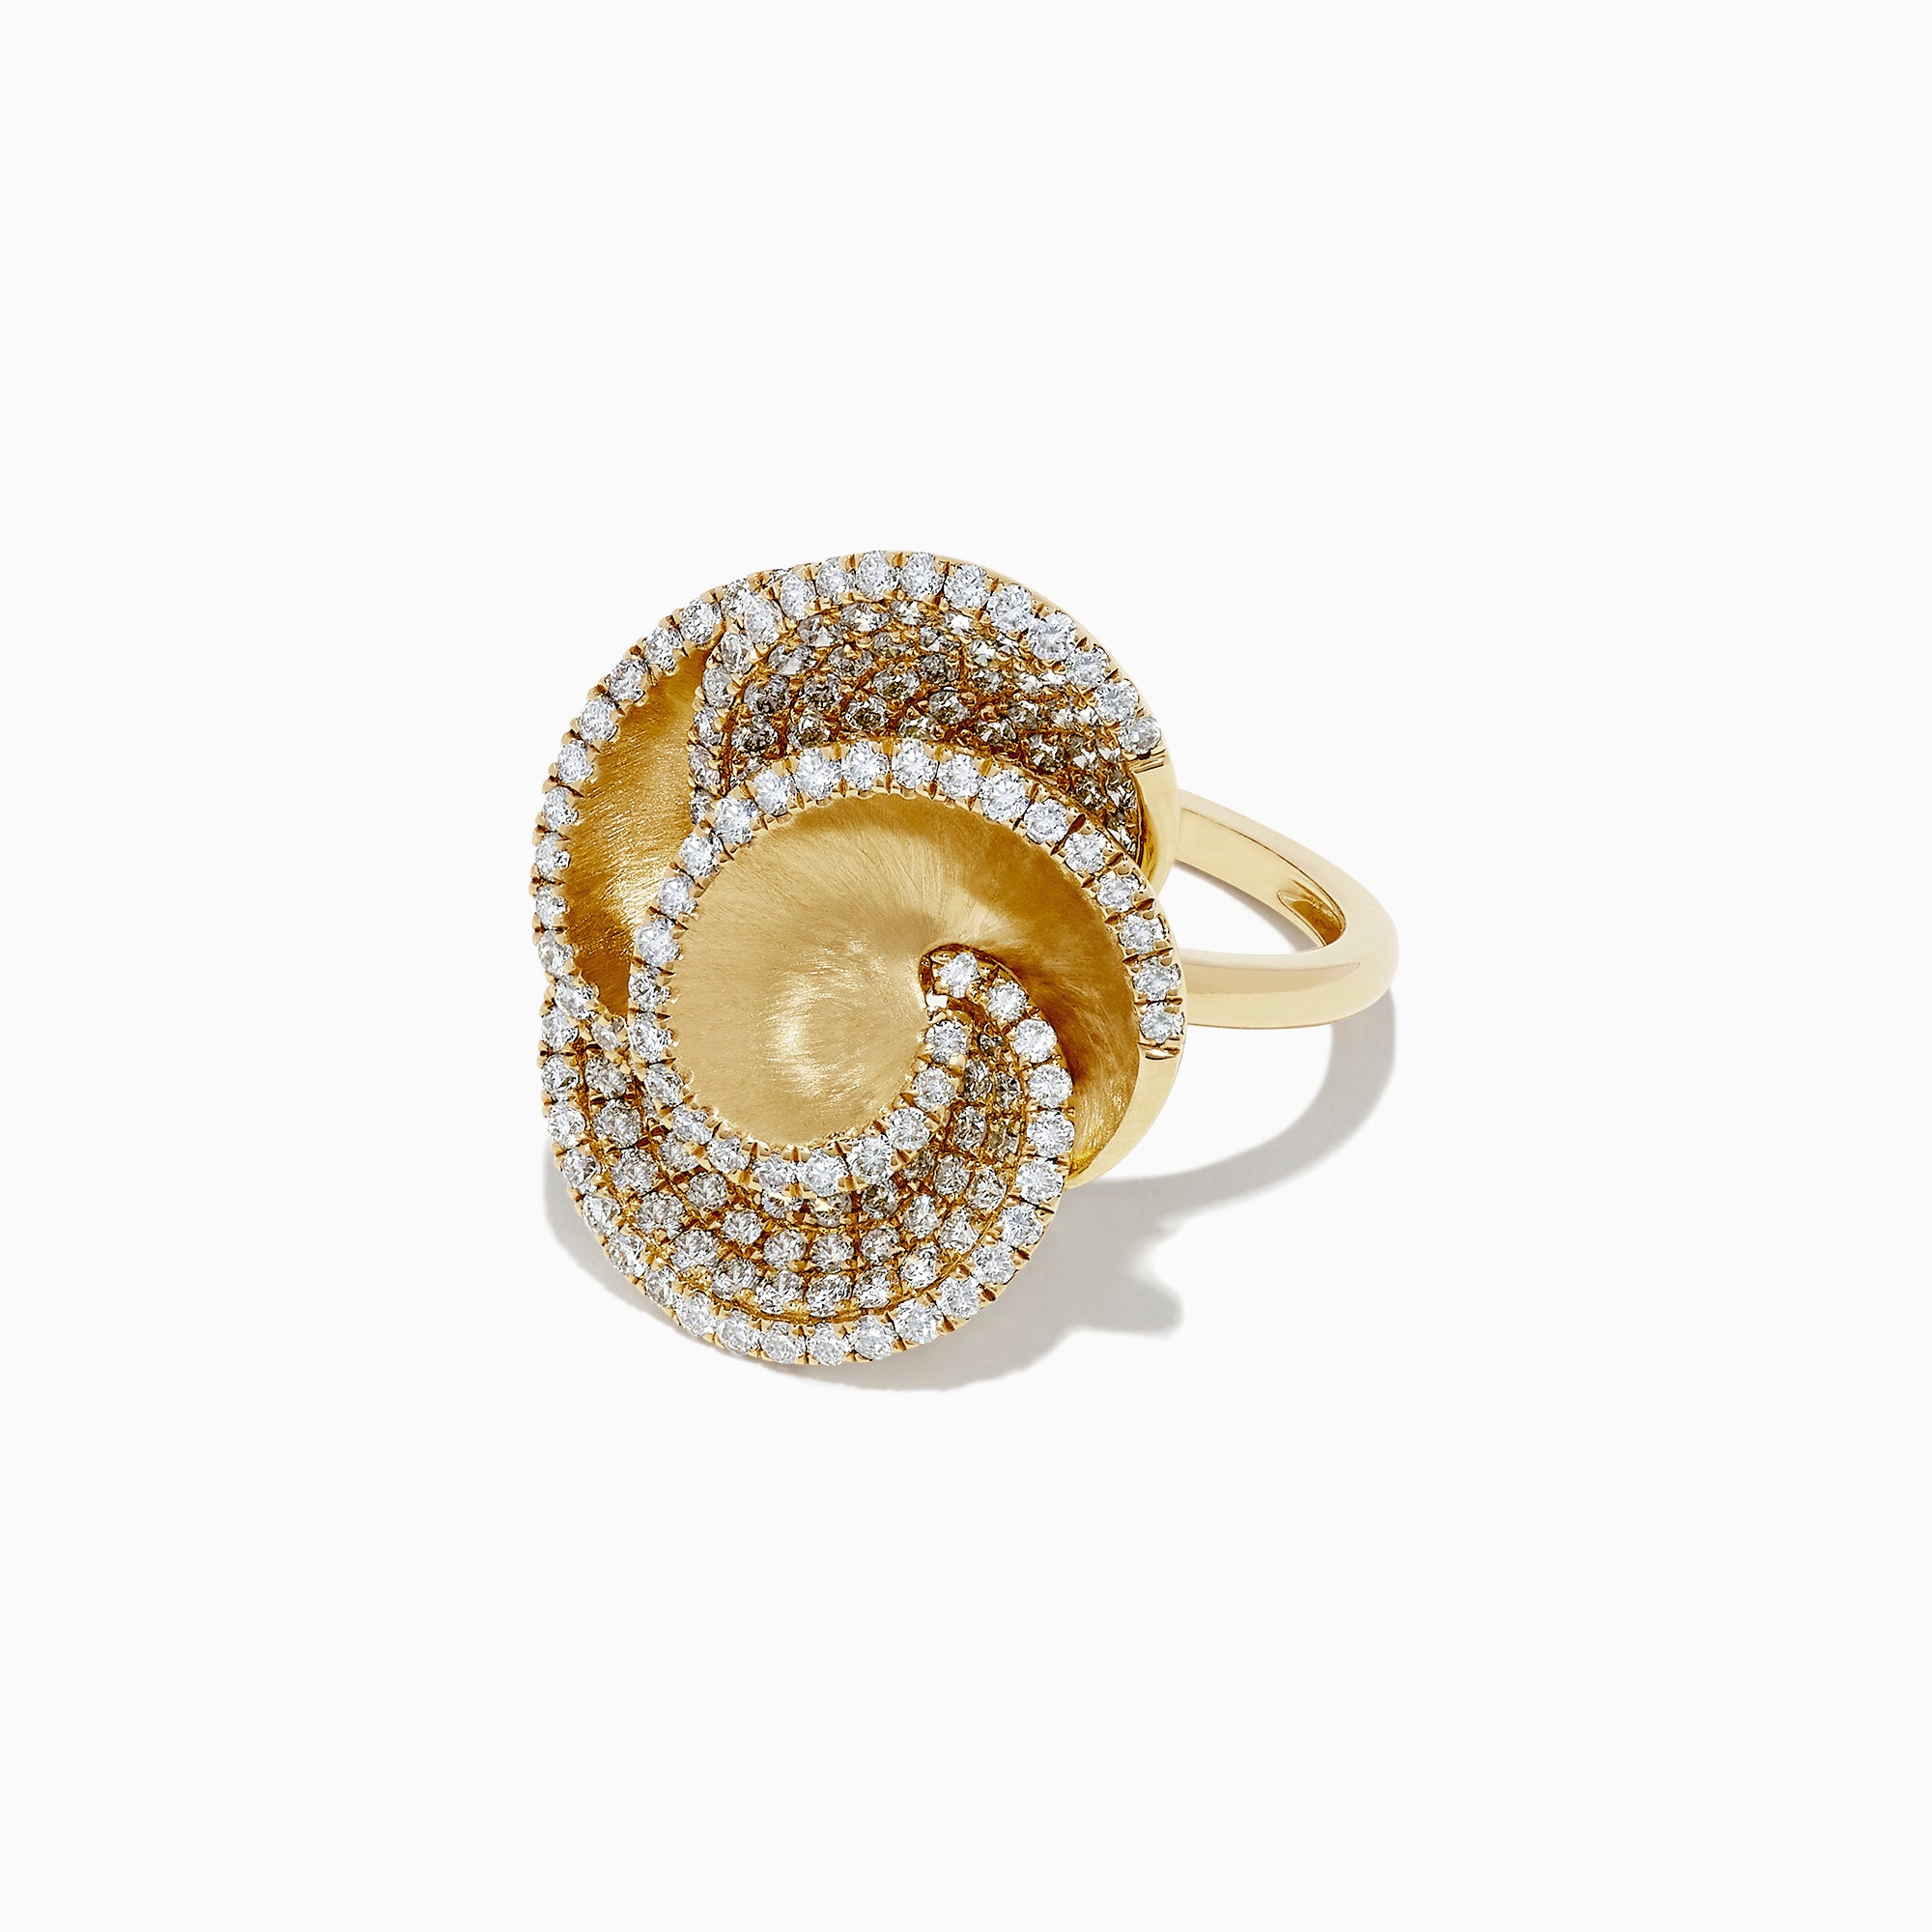 Effy D'Oro 14K Yellow Gold Diamond Flower Ring, 1.61 TCW